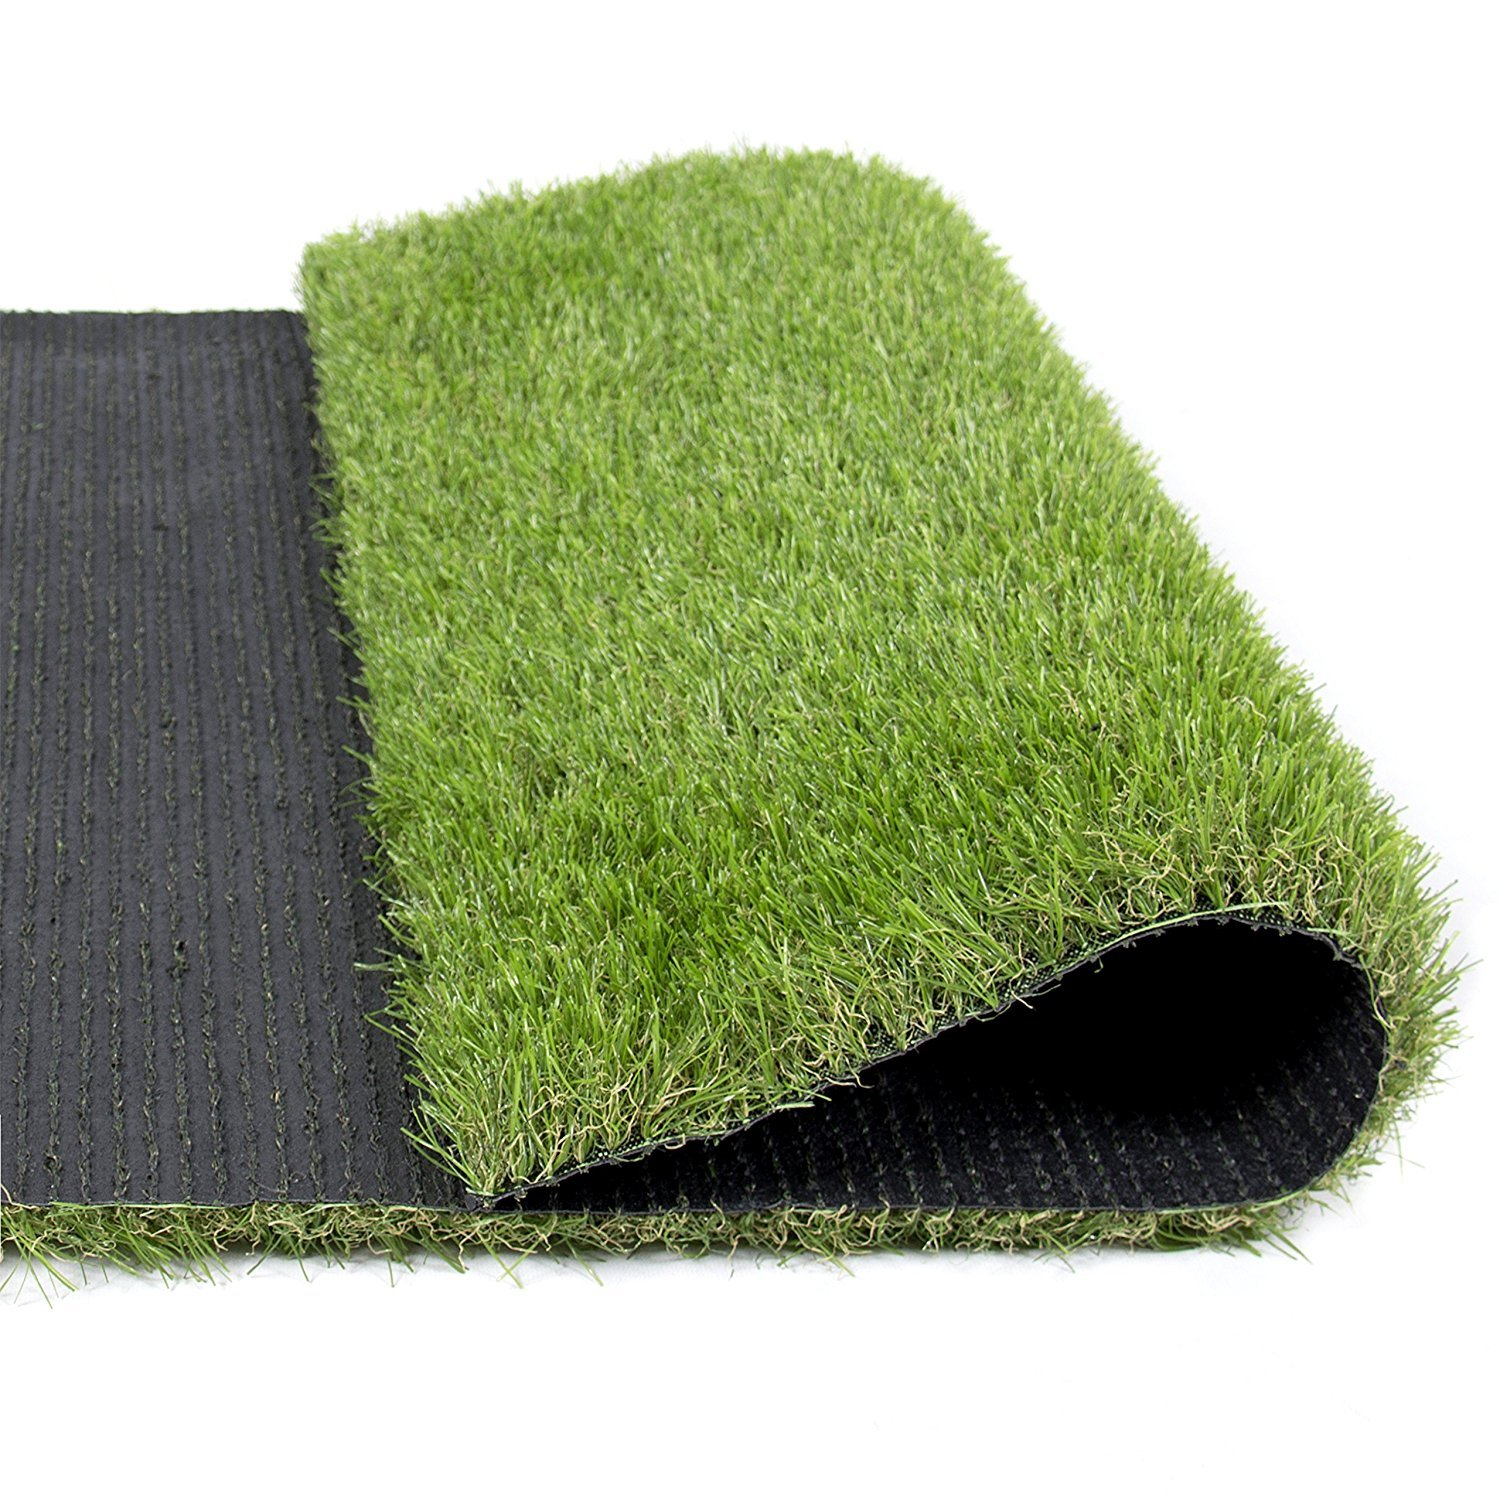 Indoor/Outdoor Green Artificial Grass a Natural Lawn Landscape Fake Grass Artificial Anti-wear Turf Tiles(Autumn color) (3.3'x3.3')